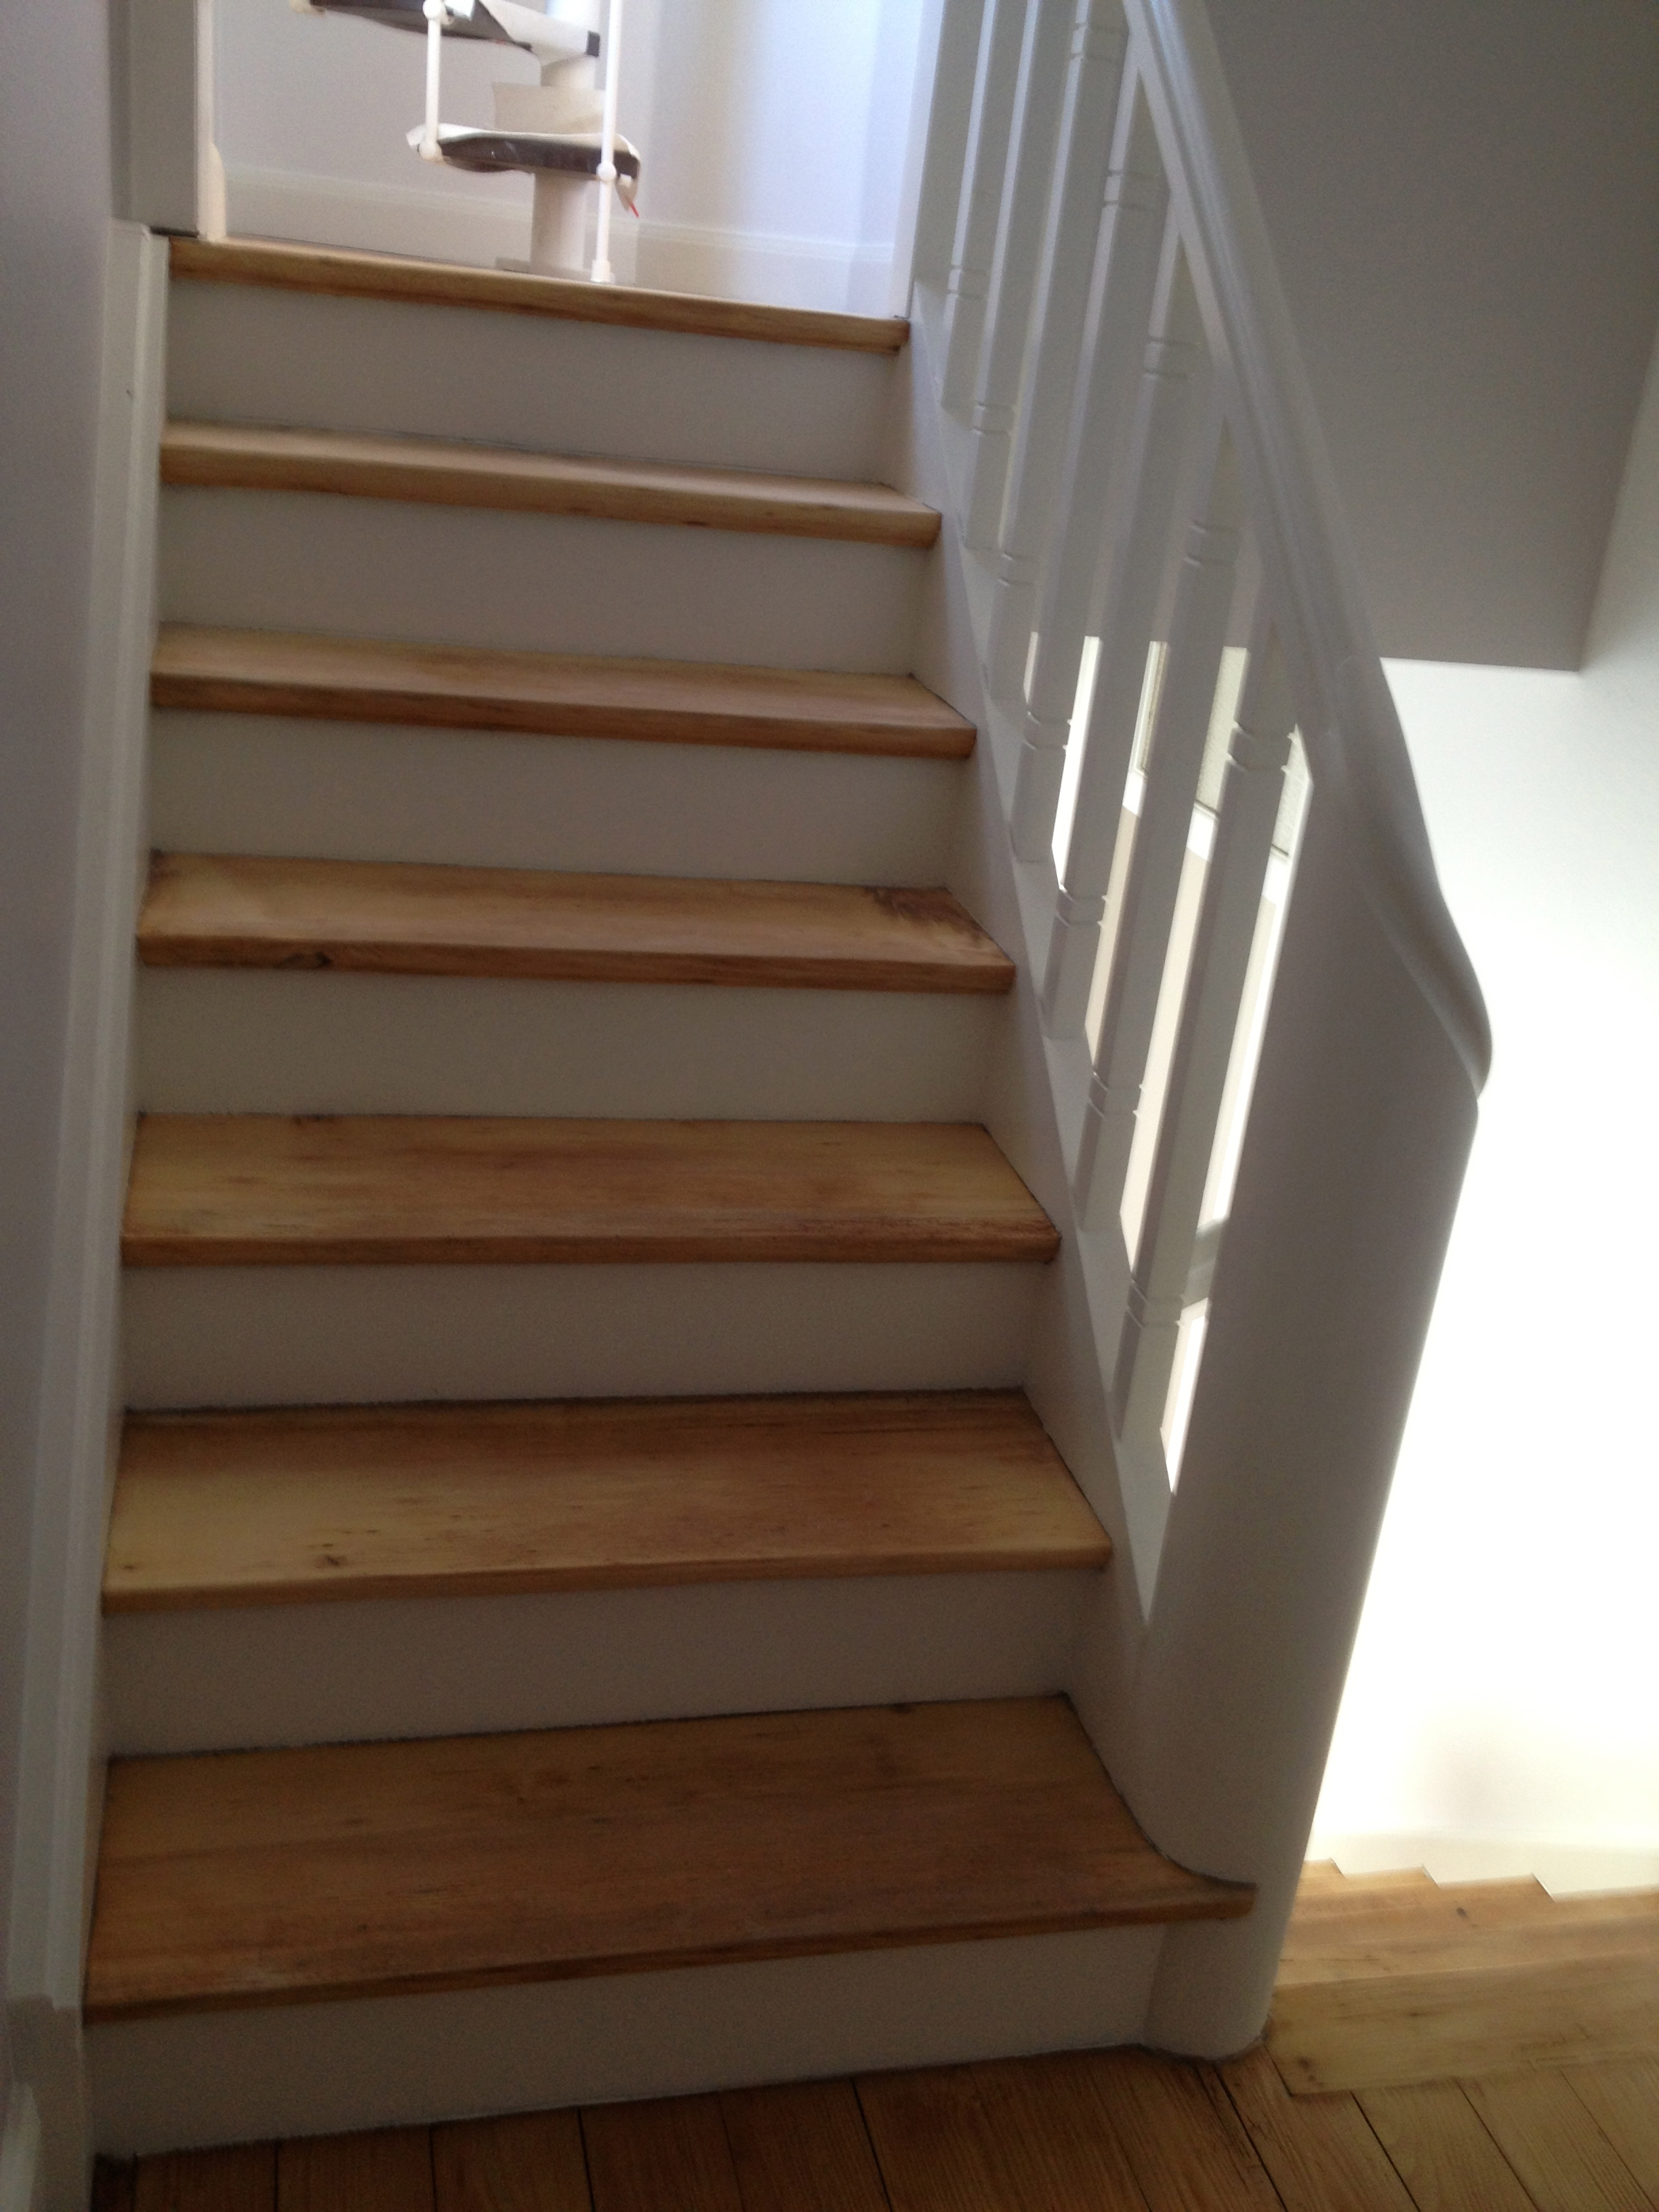 Renovation descalier en bois id e for Escalier suspendu pas cher